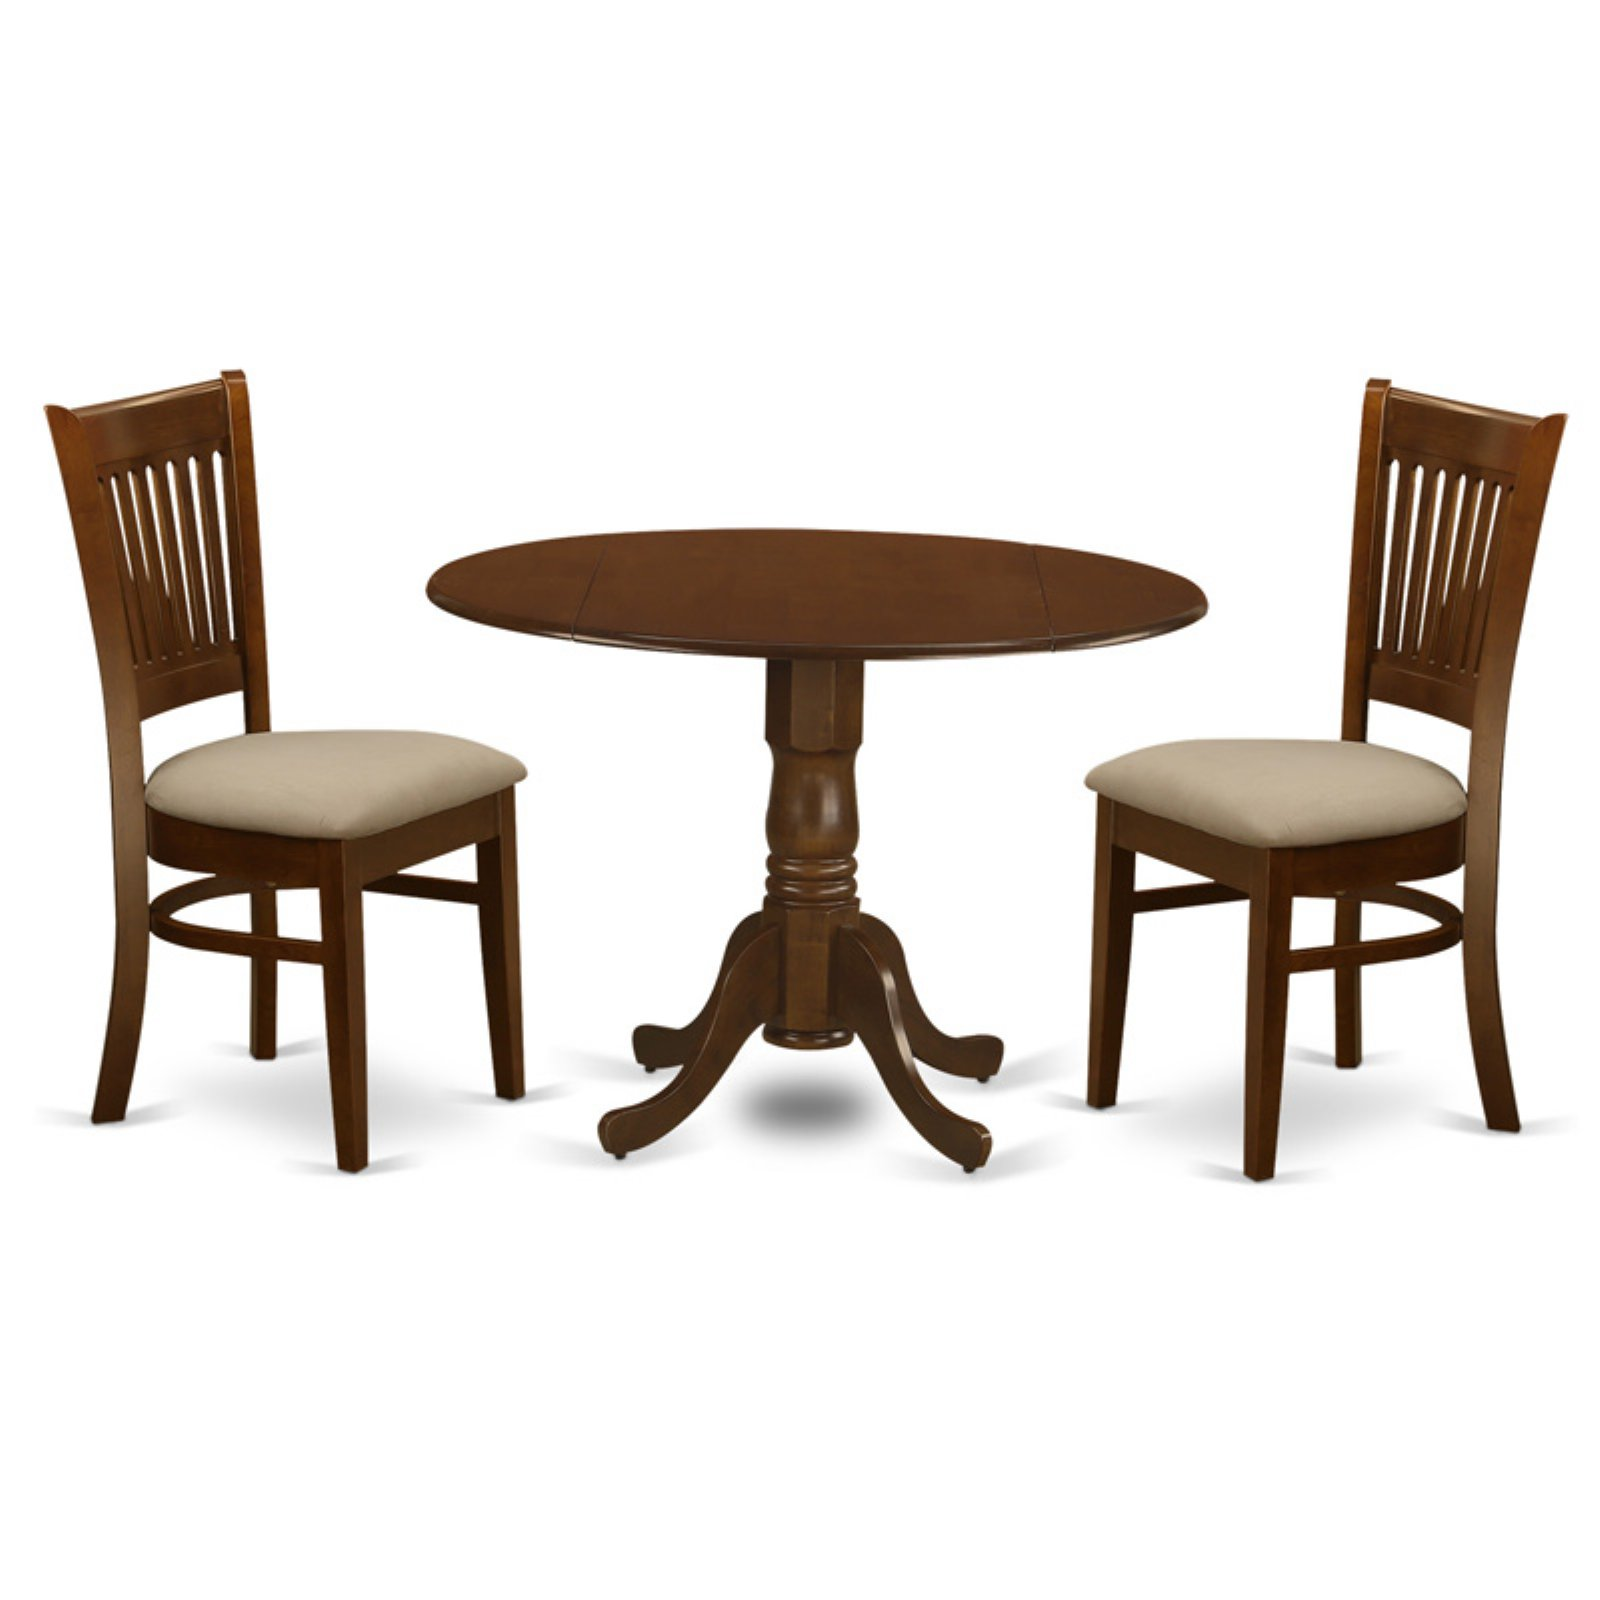 East West Furniture 3 Piece Empire Drop Leaf Dinette Dining Table Set